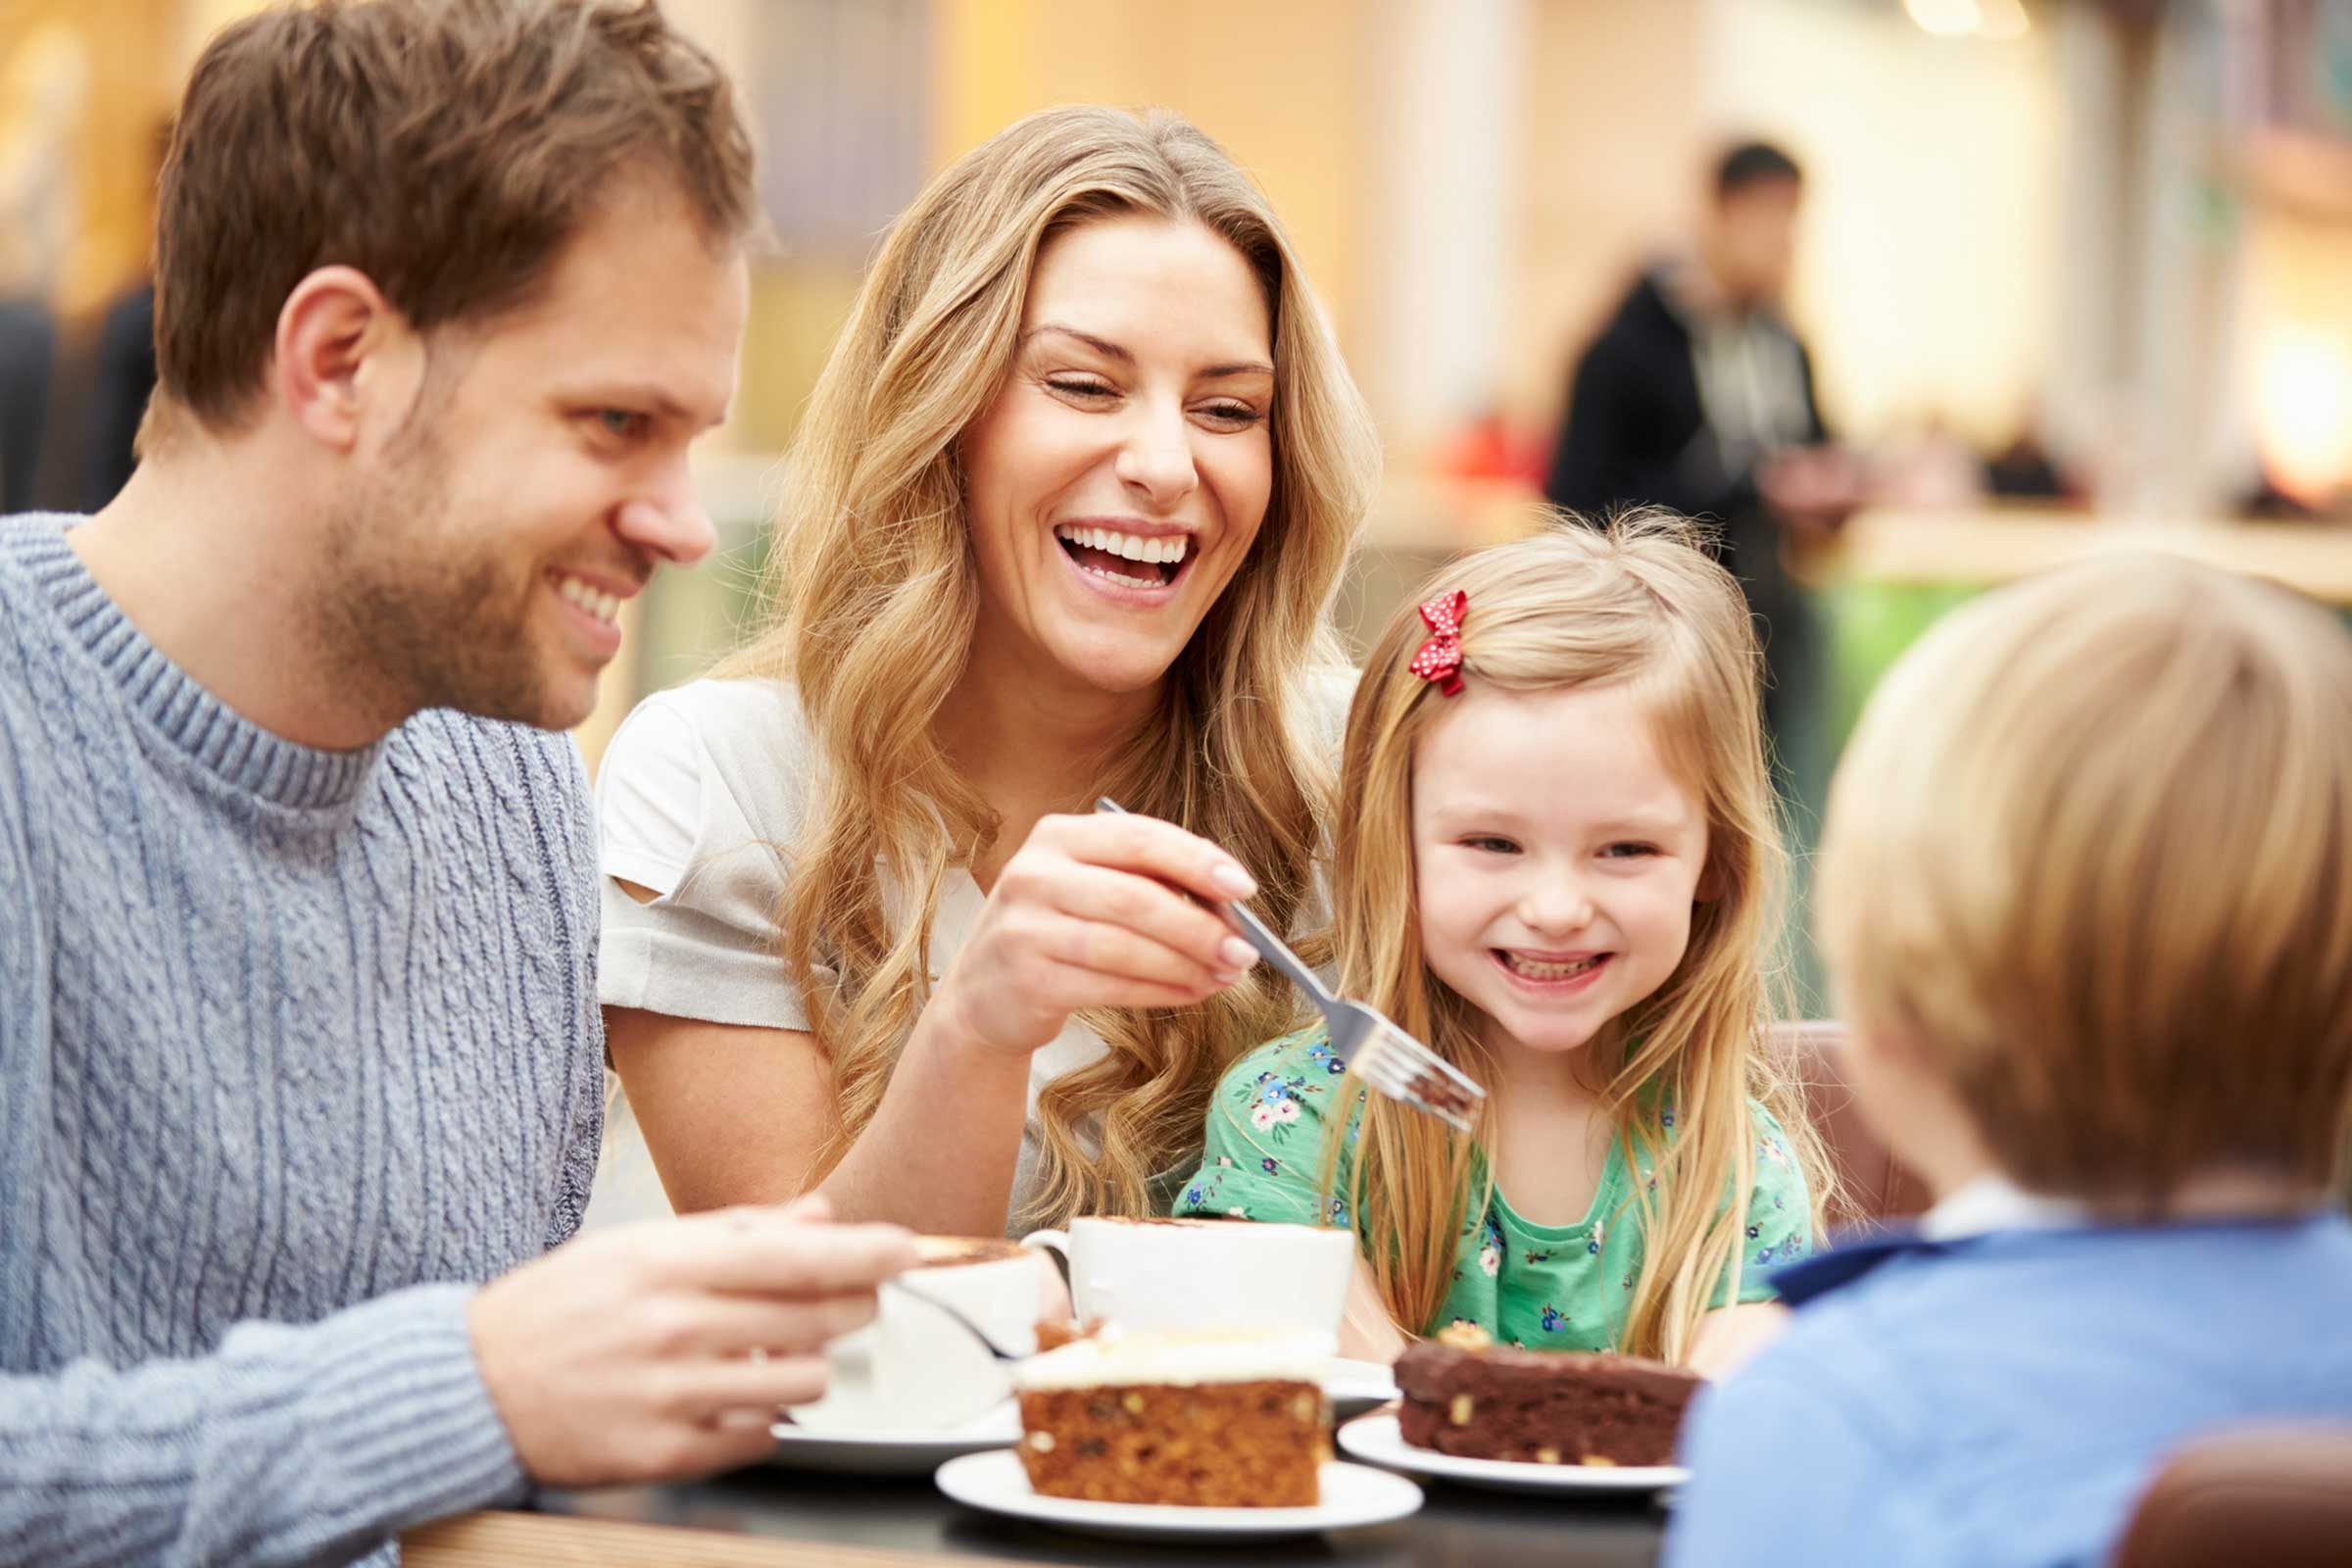 The Family Meal: Why Eating Together Matters recommend